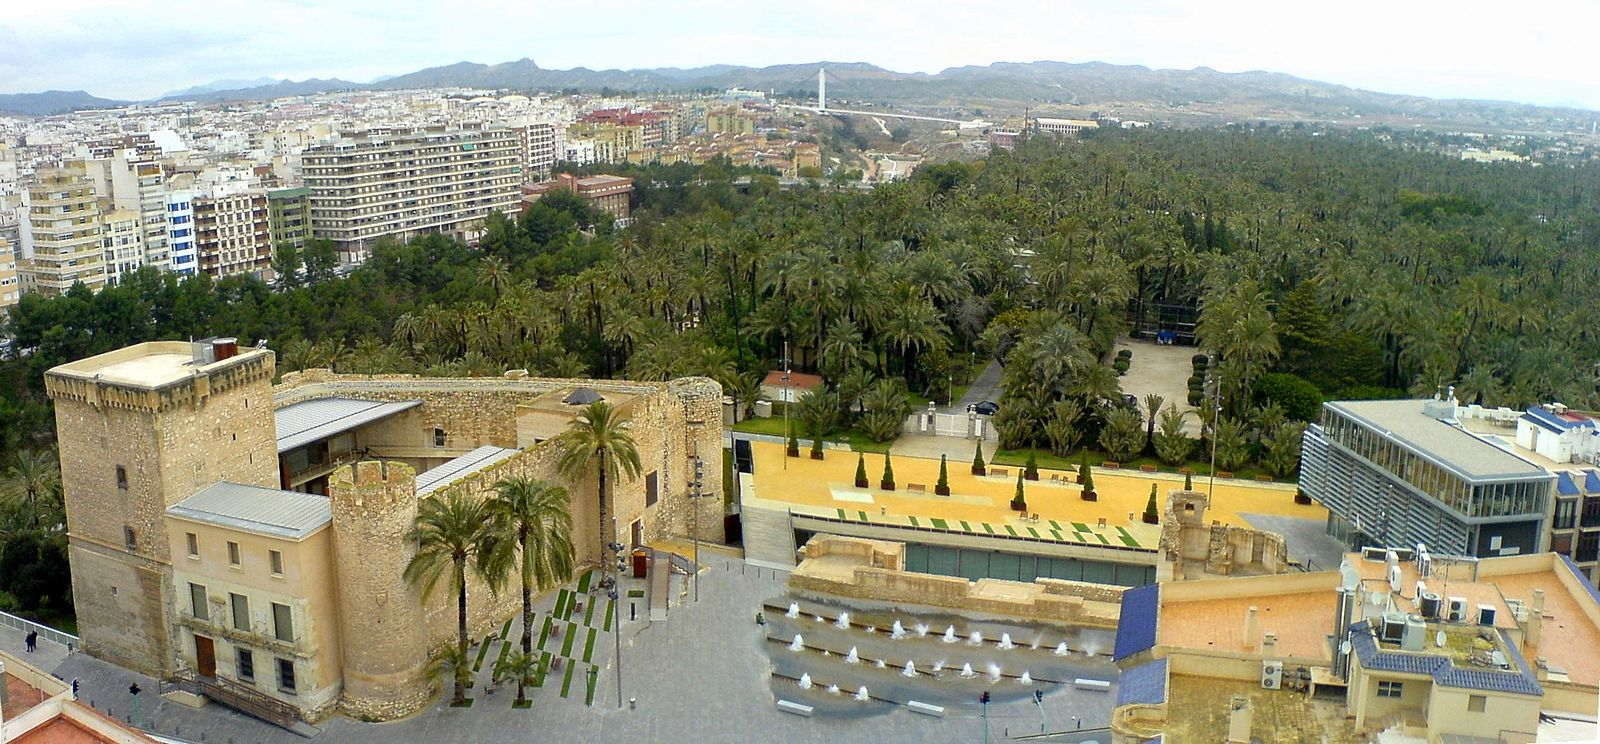 Panoramic view of Elche from the Basilica de Santa Maria: the Altamira Castle is to the left, next to the Municipal Park. Panoramica Elche.JPG